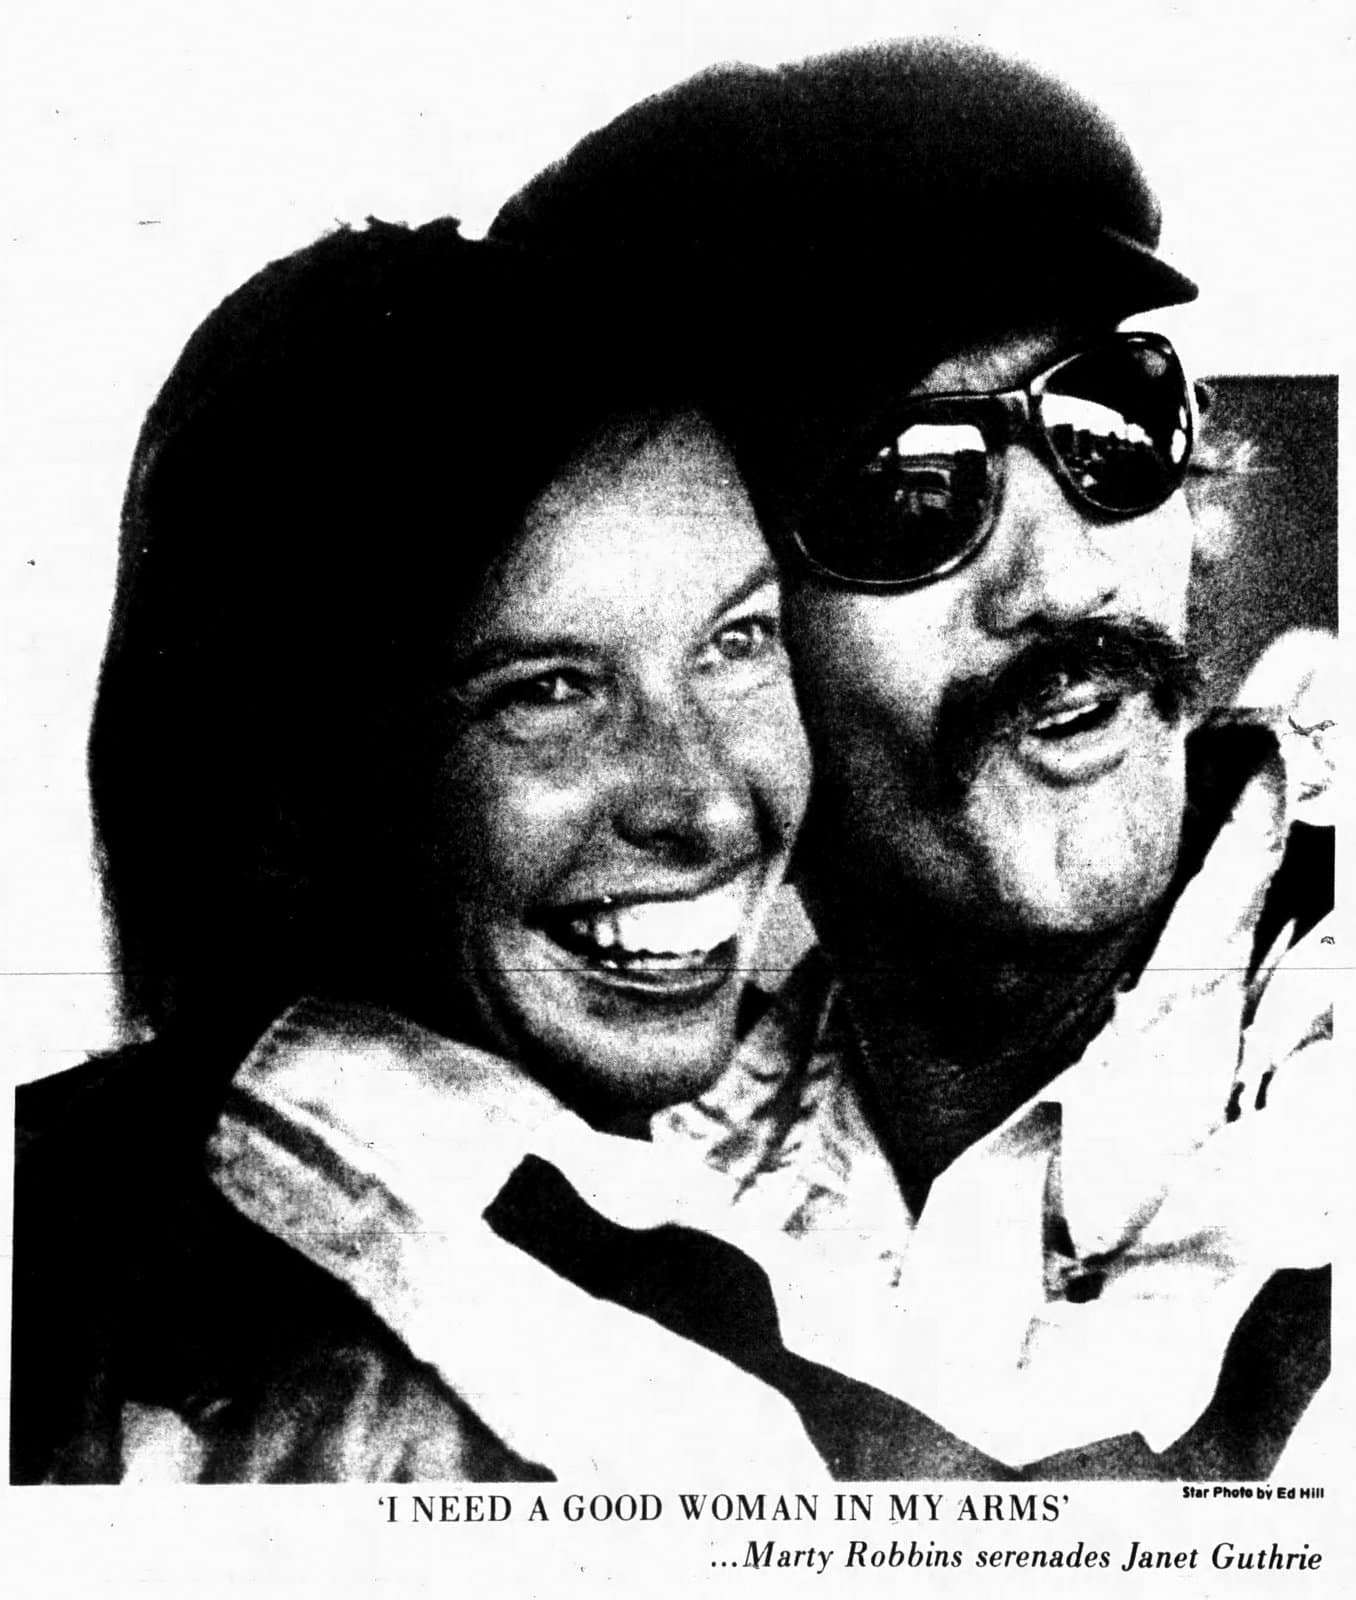 Janet Guthrie and Marty Robbins - August 5, 1977